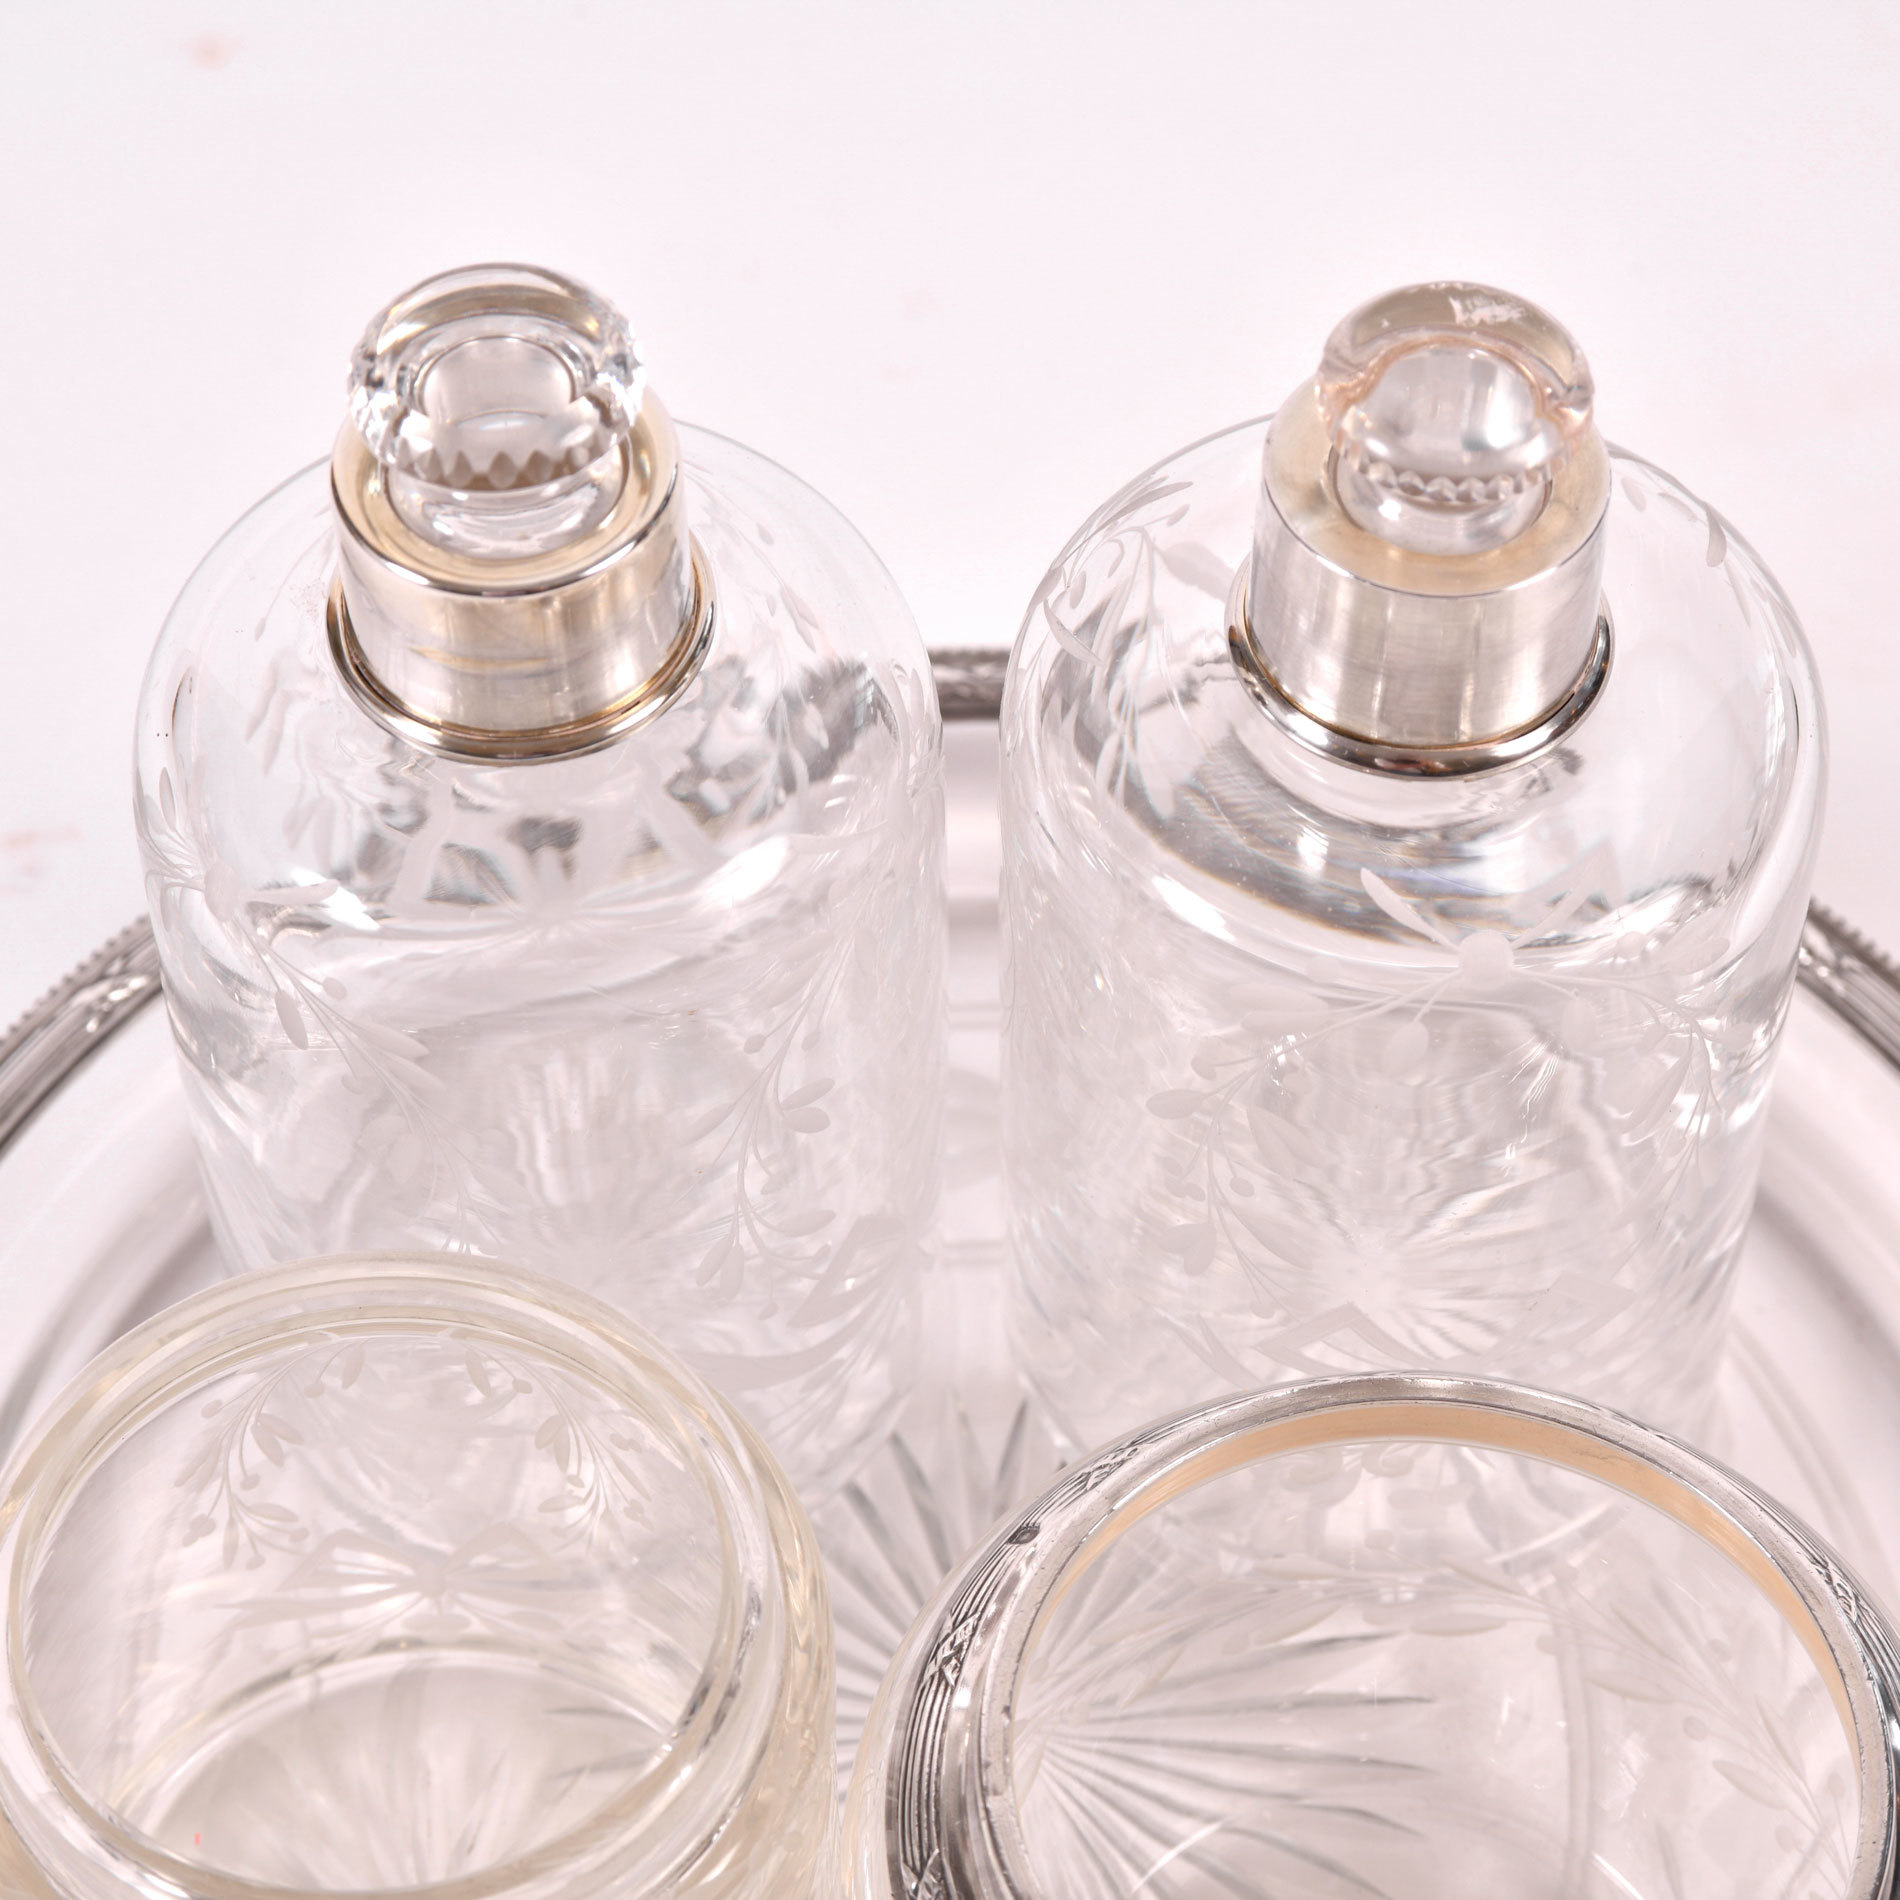 Scent Bottle Set 02